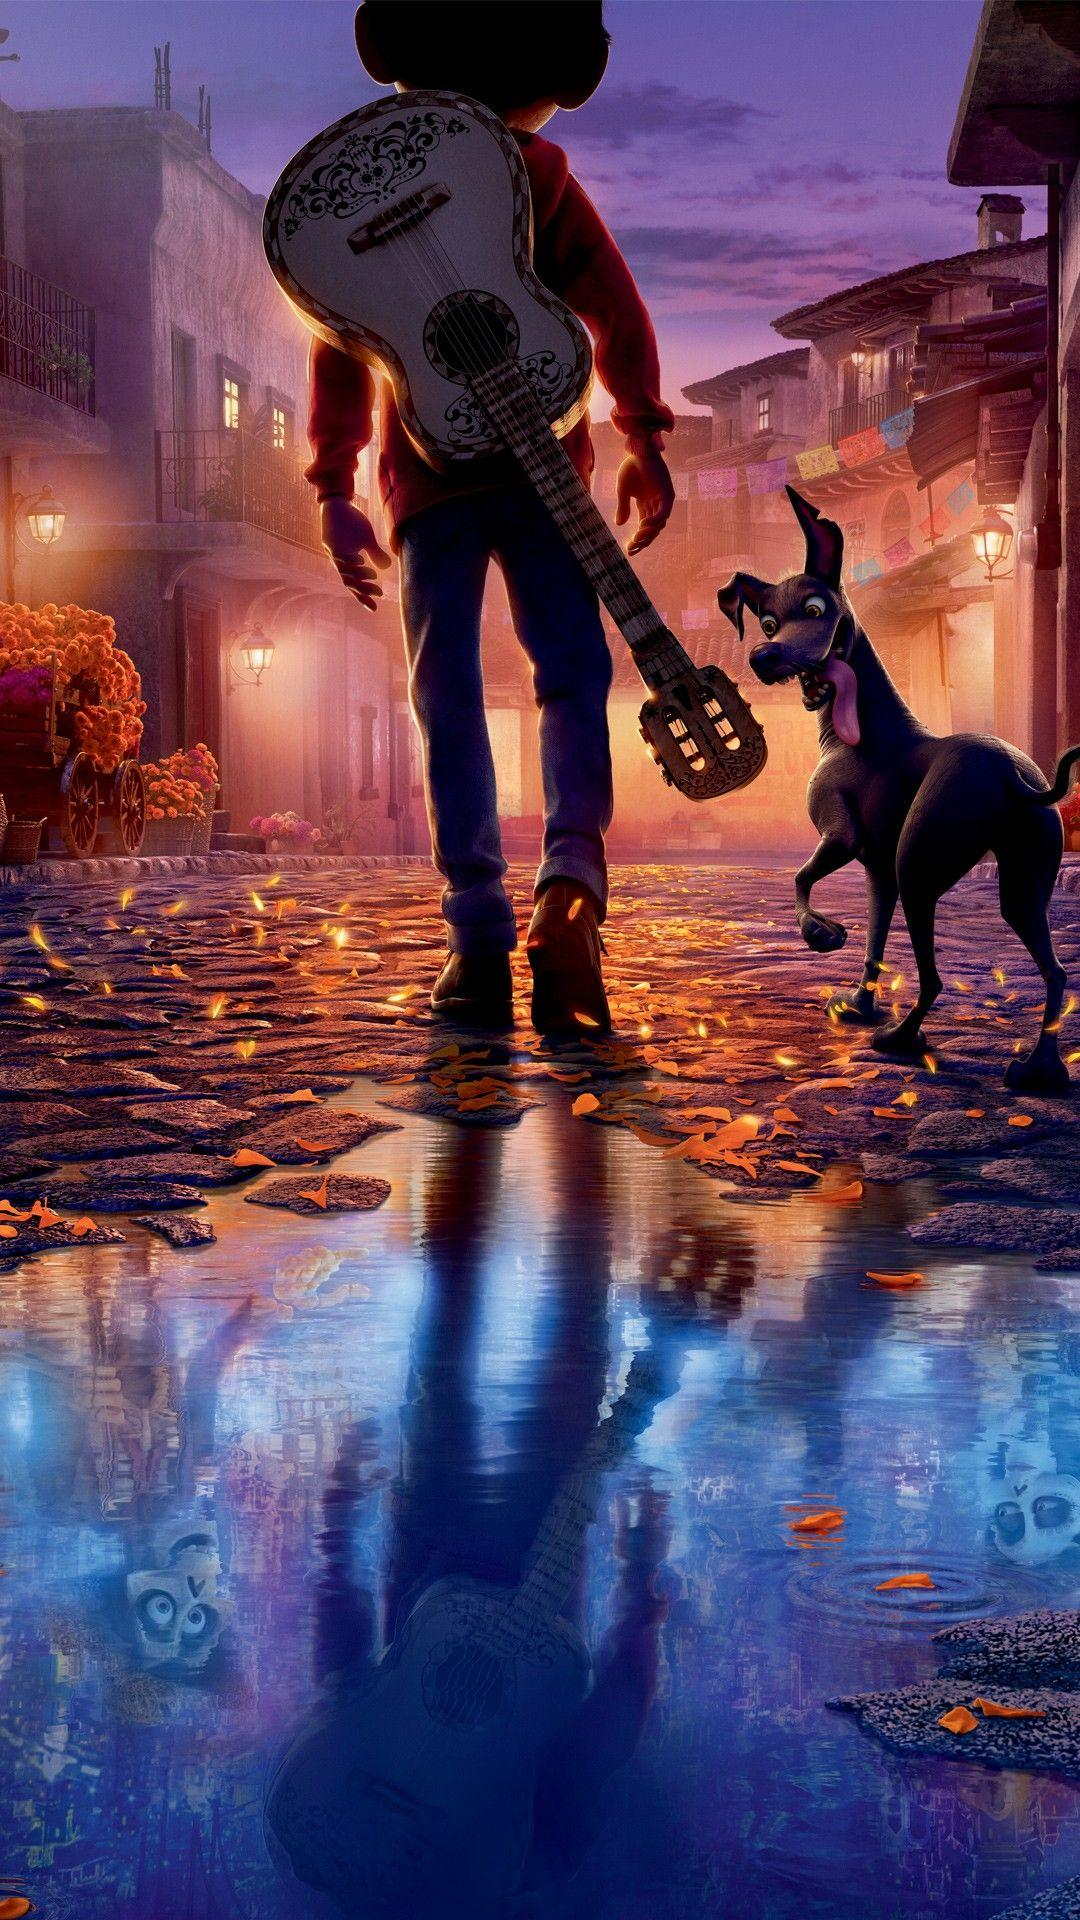 Pixar Coco 2017 4K 8K Wallpapers